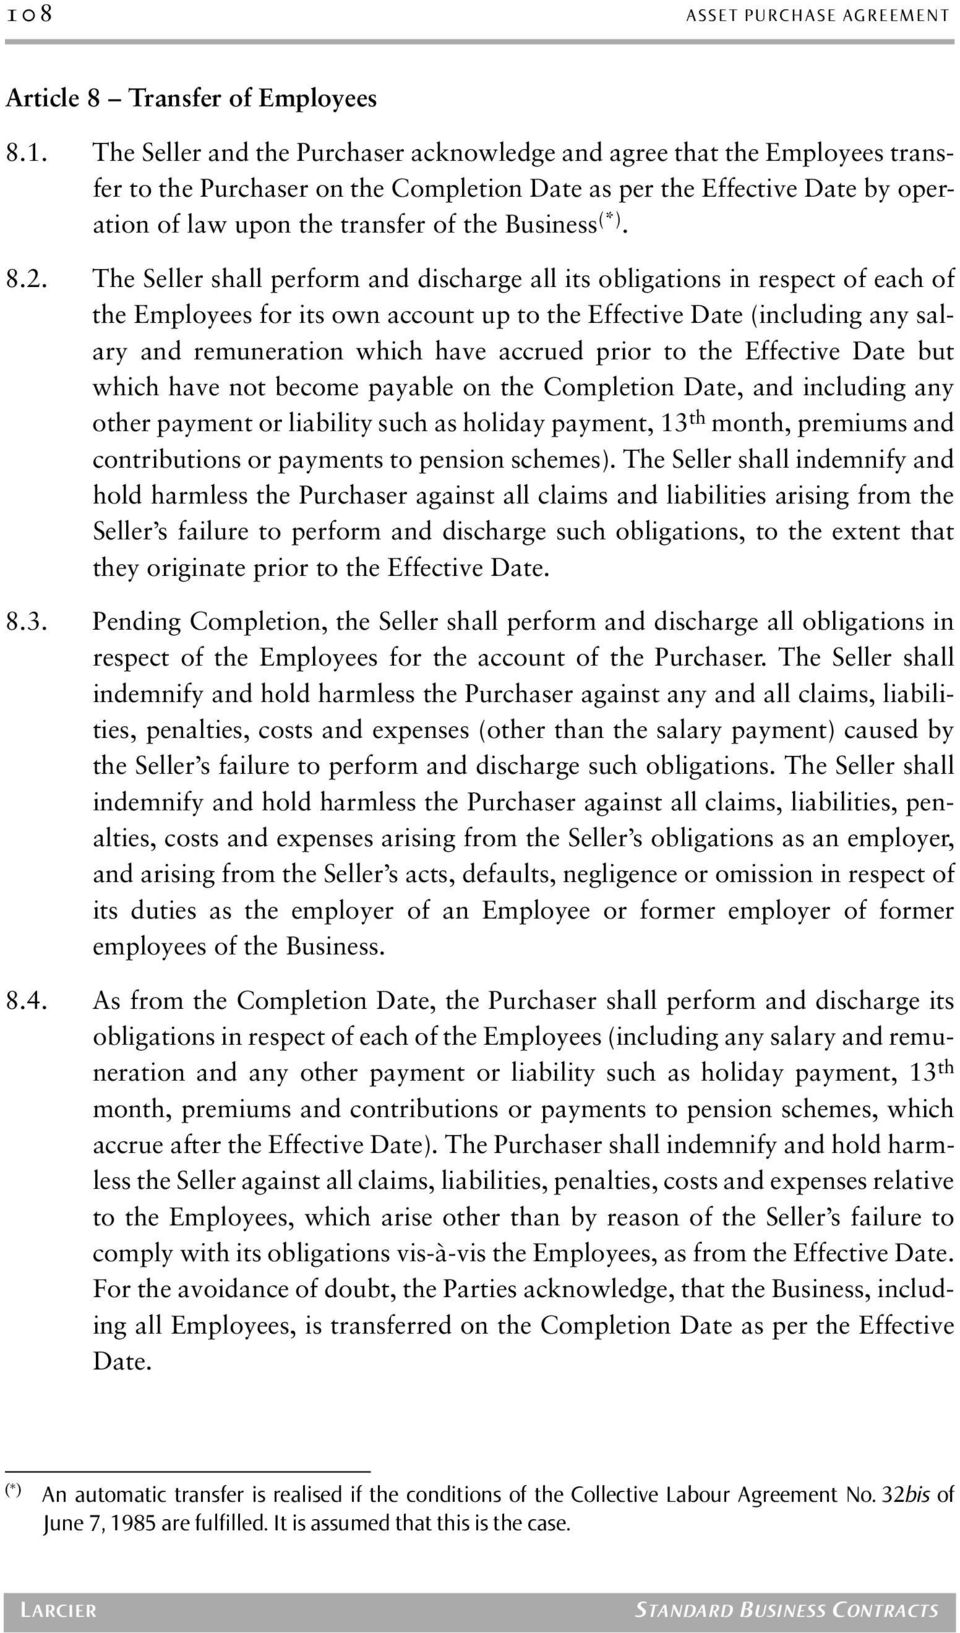 The Seller shall perform and discharge all its obligations in respect of each of the Employees for its own account up to the Effective Date (including any salary and remuneration which have accrued